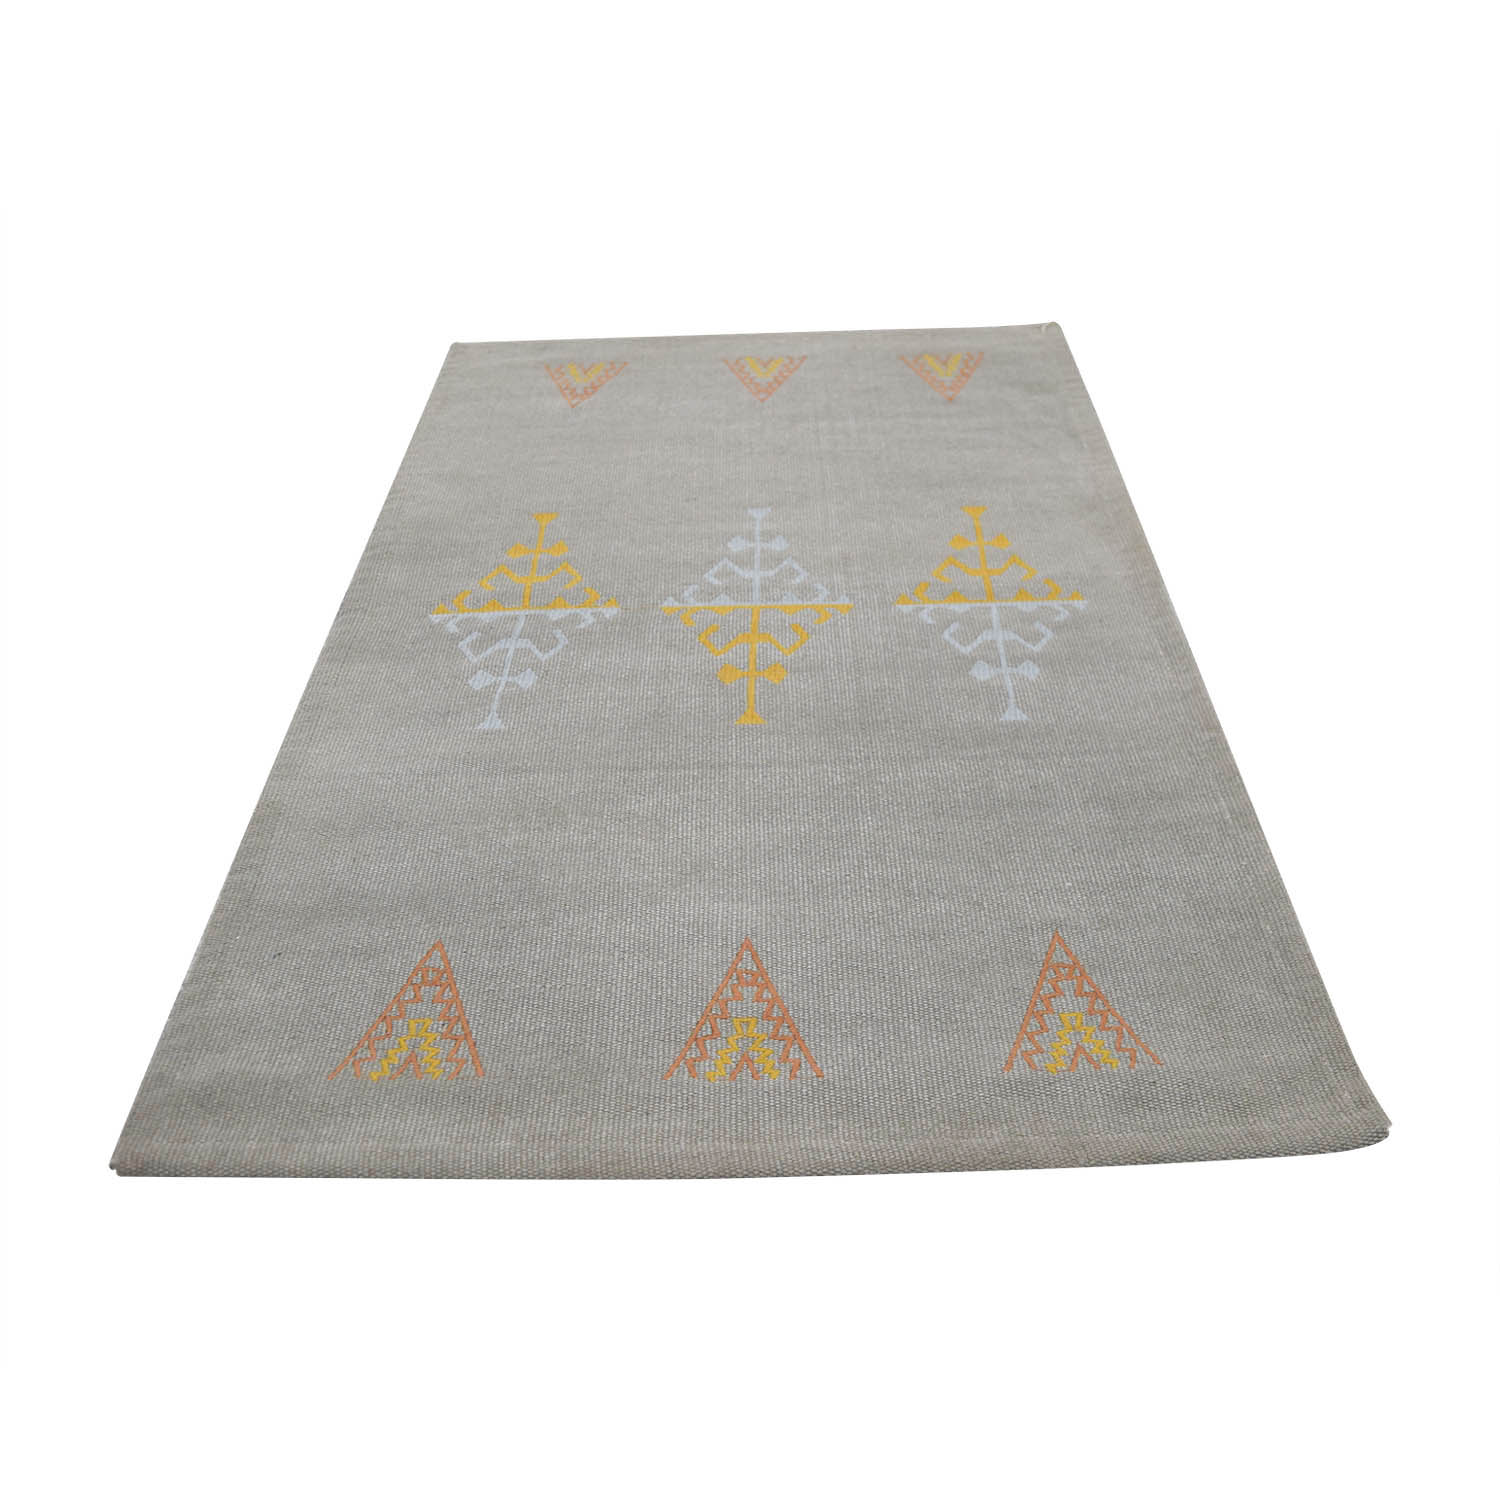 shop Obeetee Grey Multi-Colored Rug Obeetee Decor